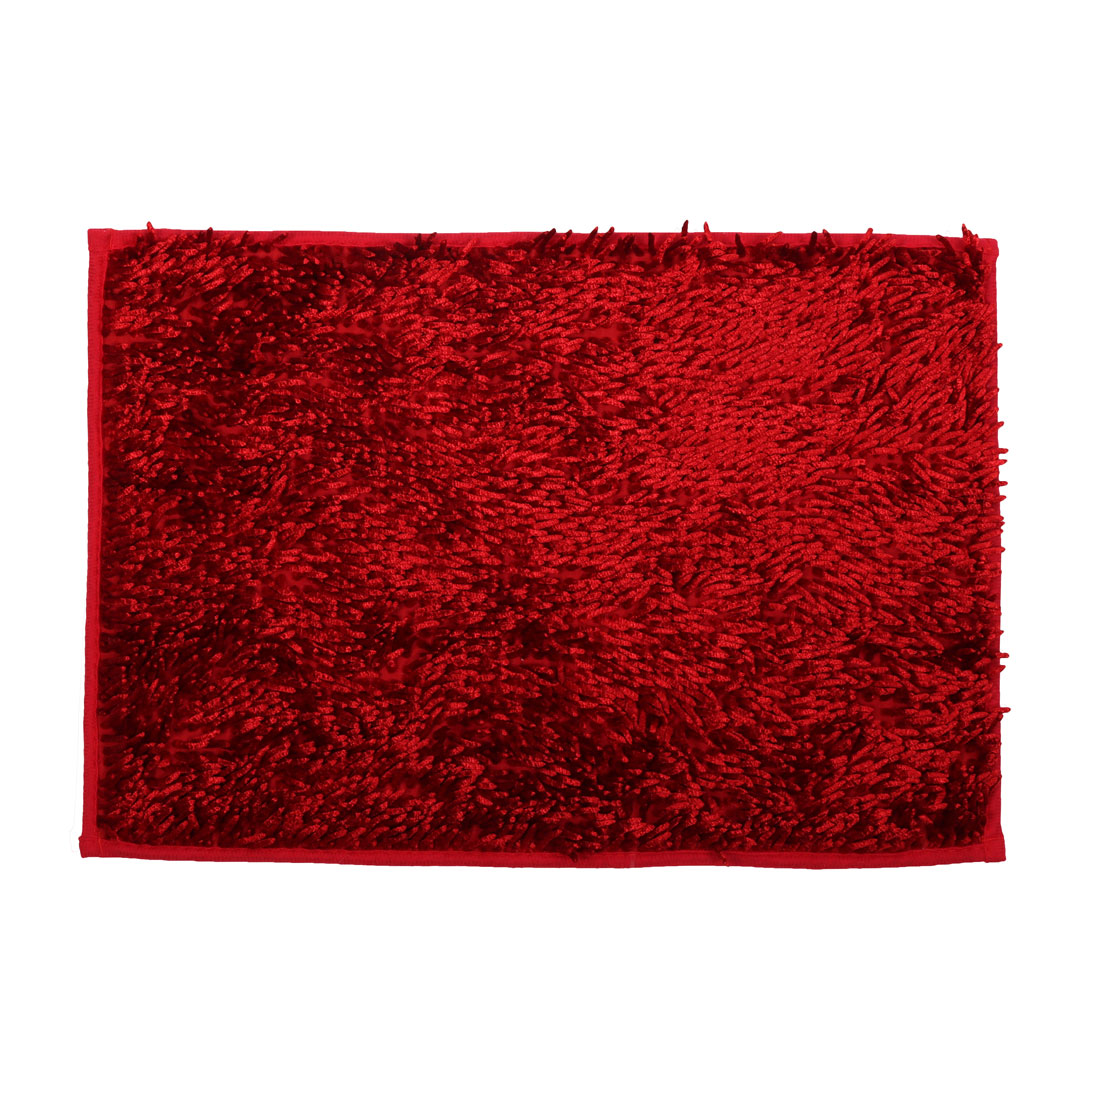 Houme Bathroom Slip Resistant Absorbent Carpet Bath Rug Mat Red 24 x 16 Inches